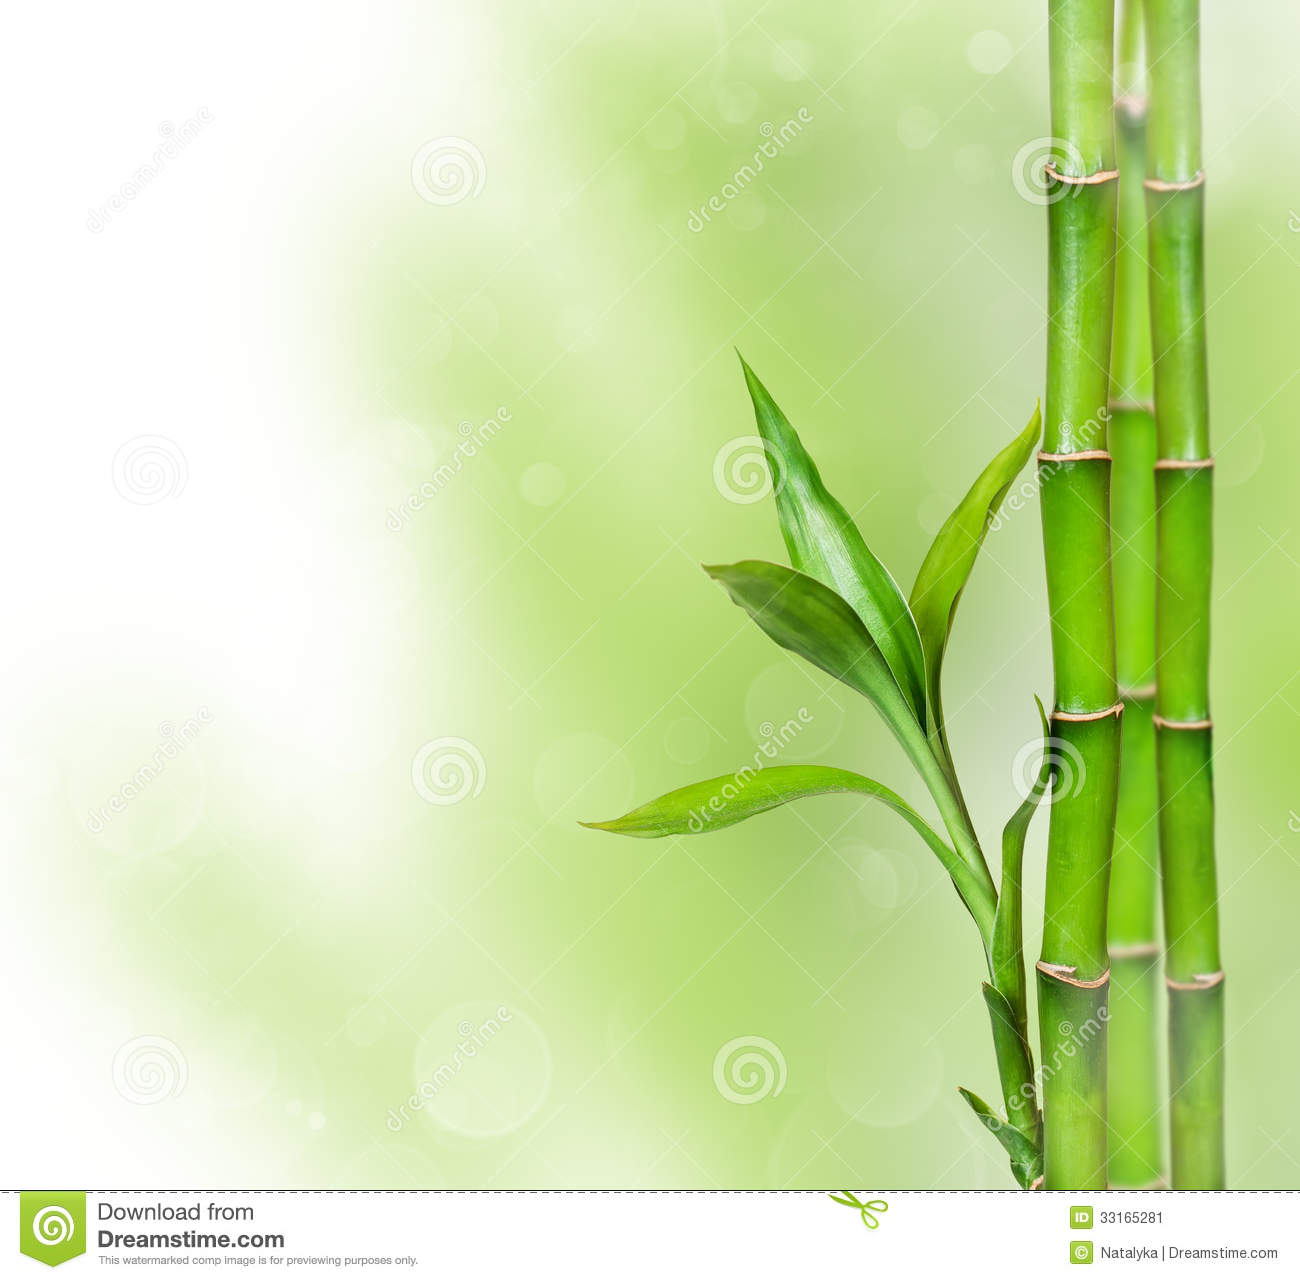 abstract backgrounds wallpaper bamboo - photo #9